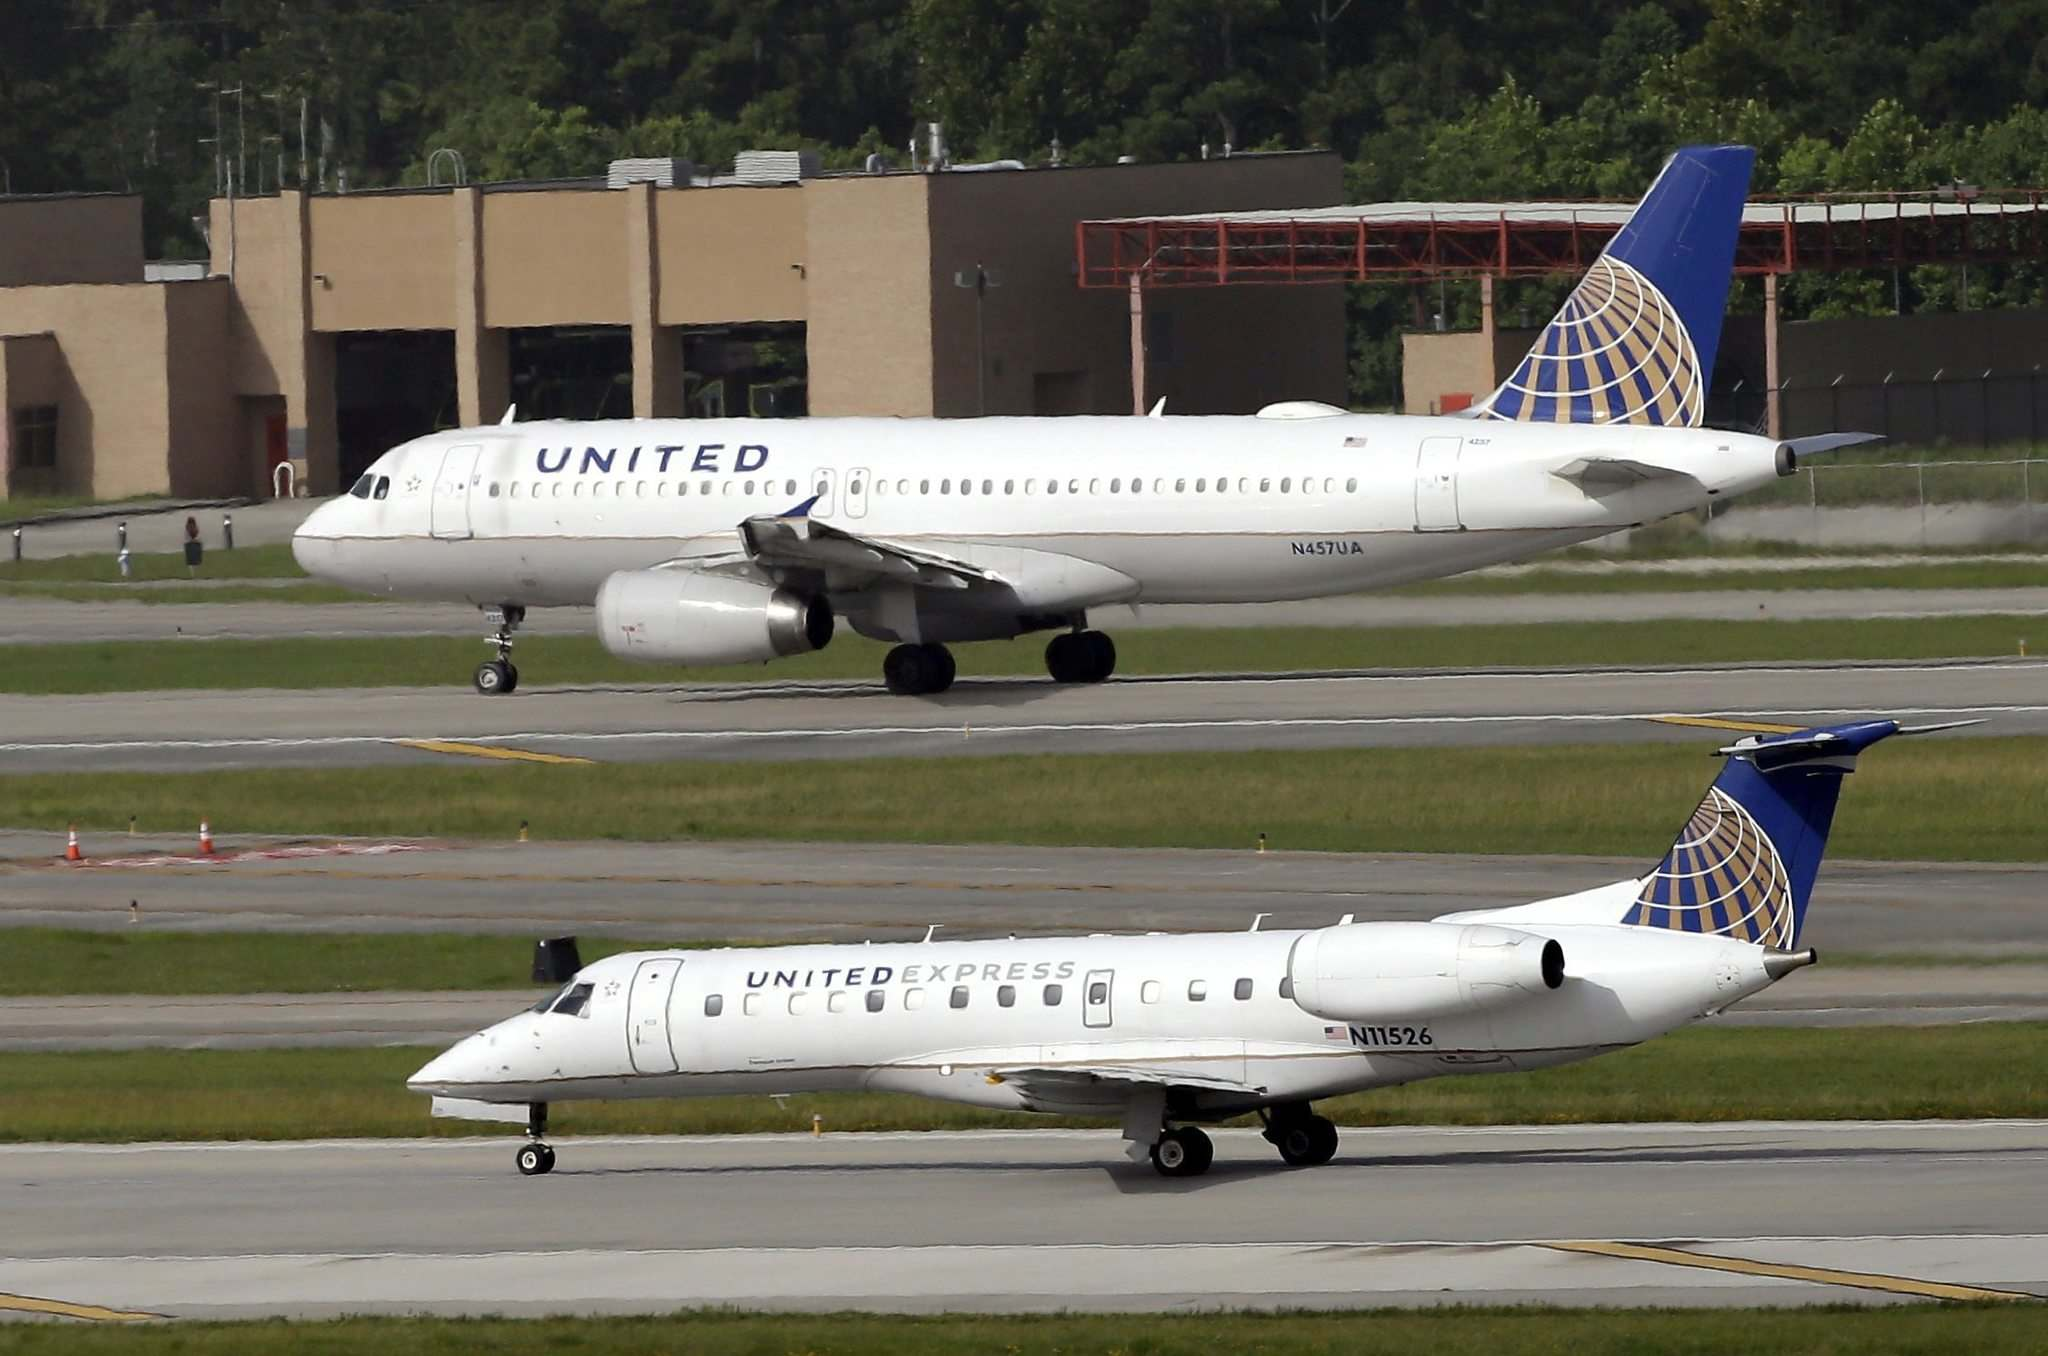 United CEO: We won't let police drag people off planes anymore